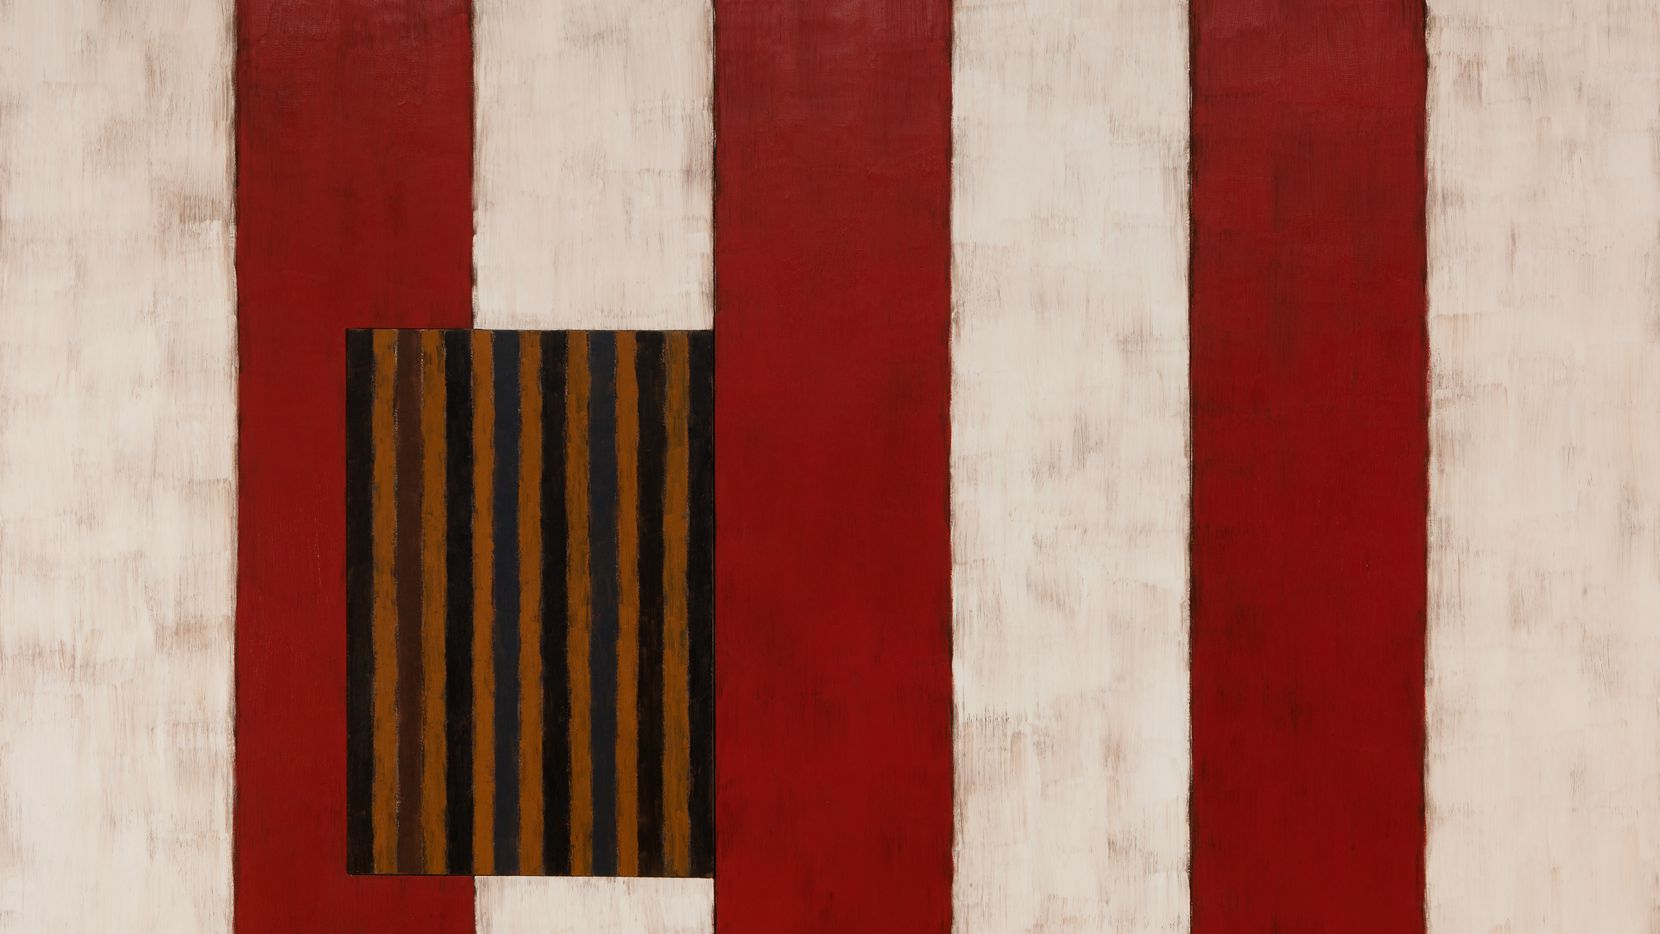 """The 1988 painting """"Pale Fire"""" is among the works by artist Sean Scully on display at the Modern Art Museum of Fort Worth through Oct. 10."""